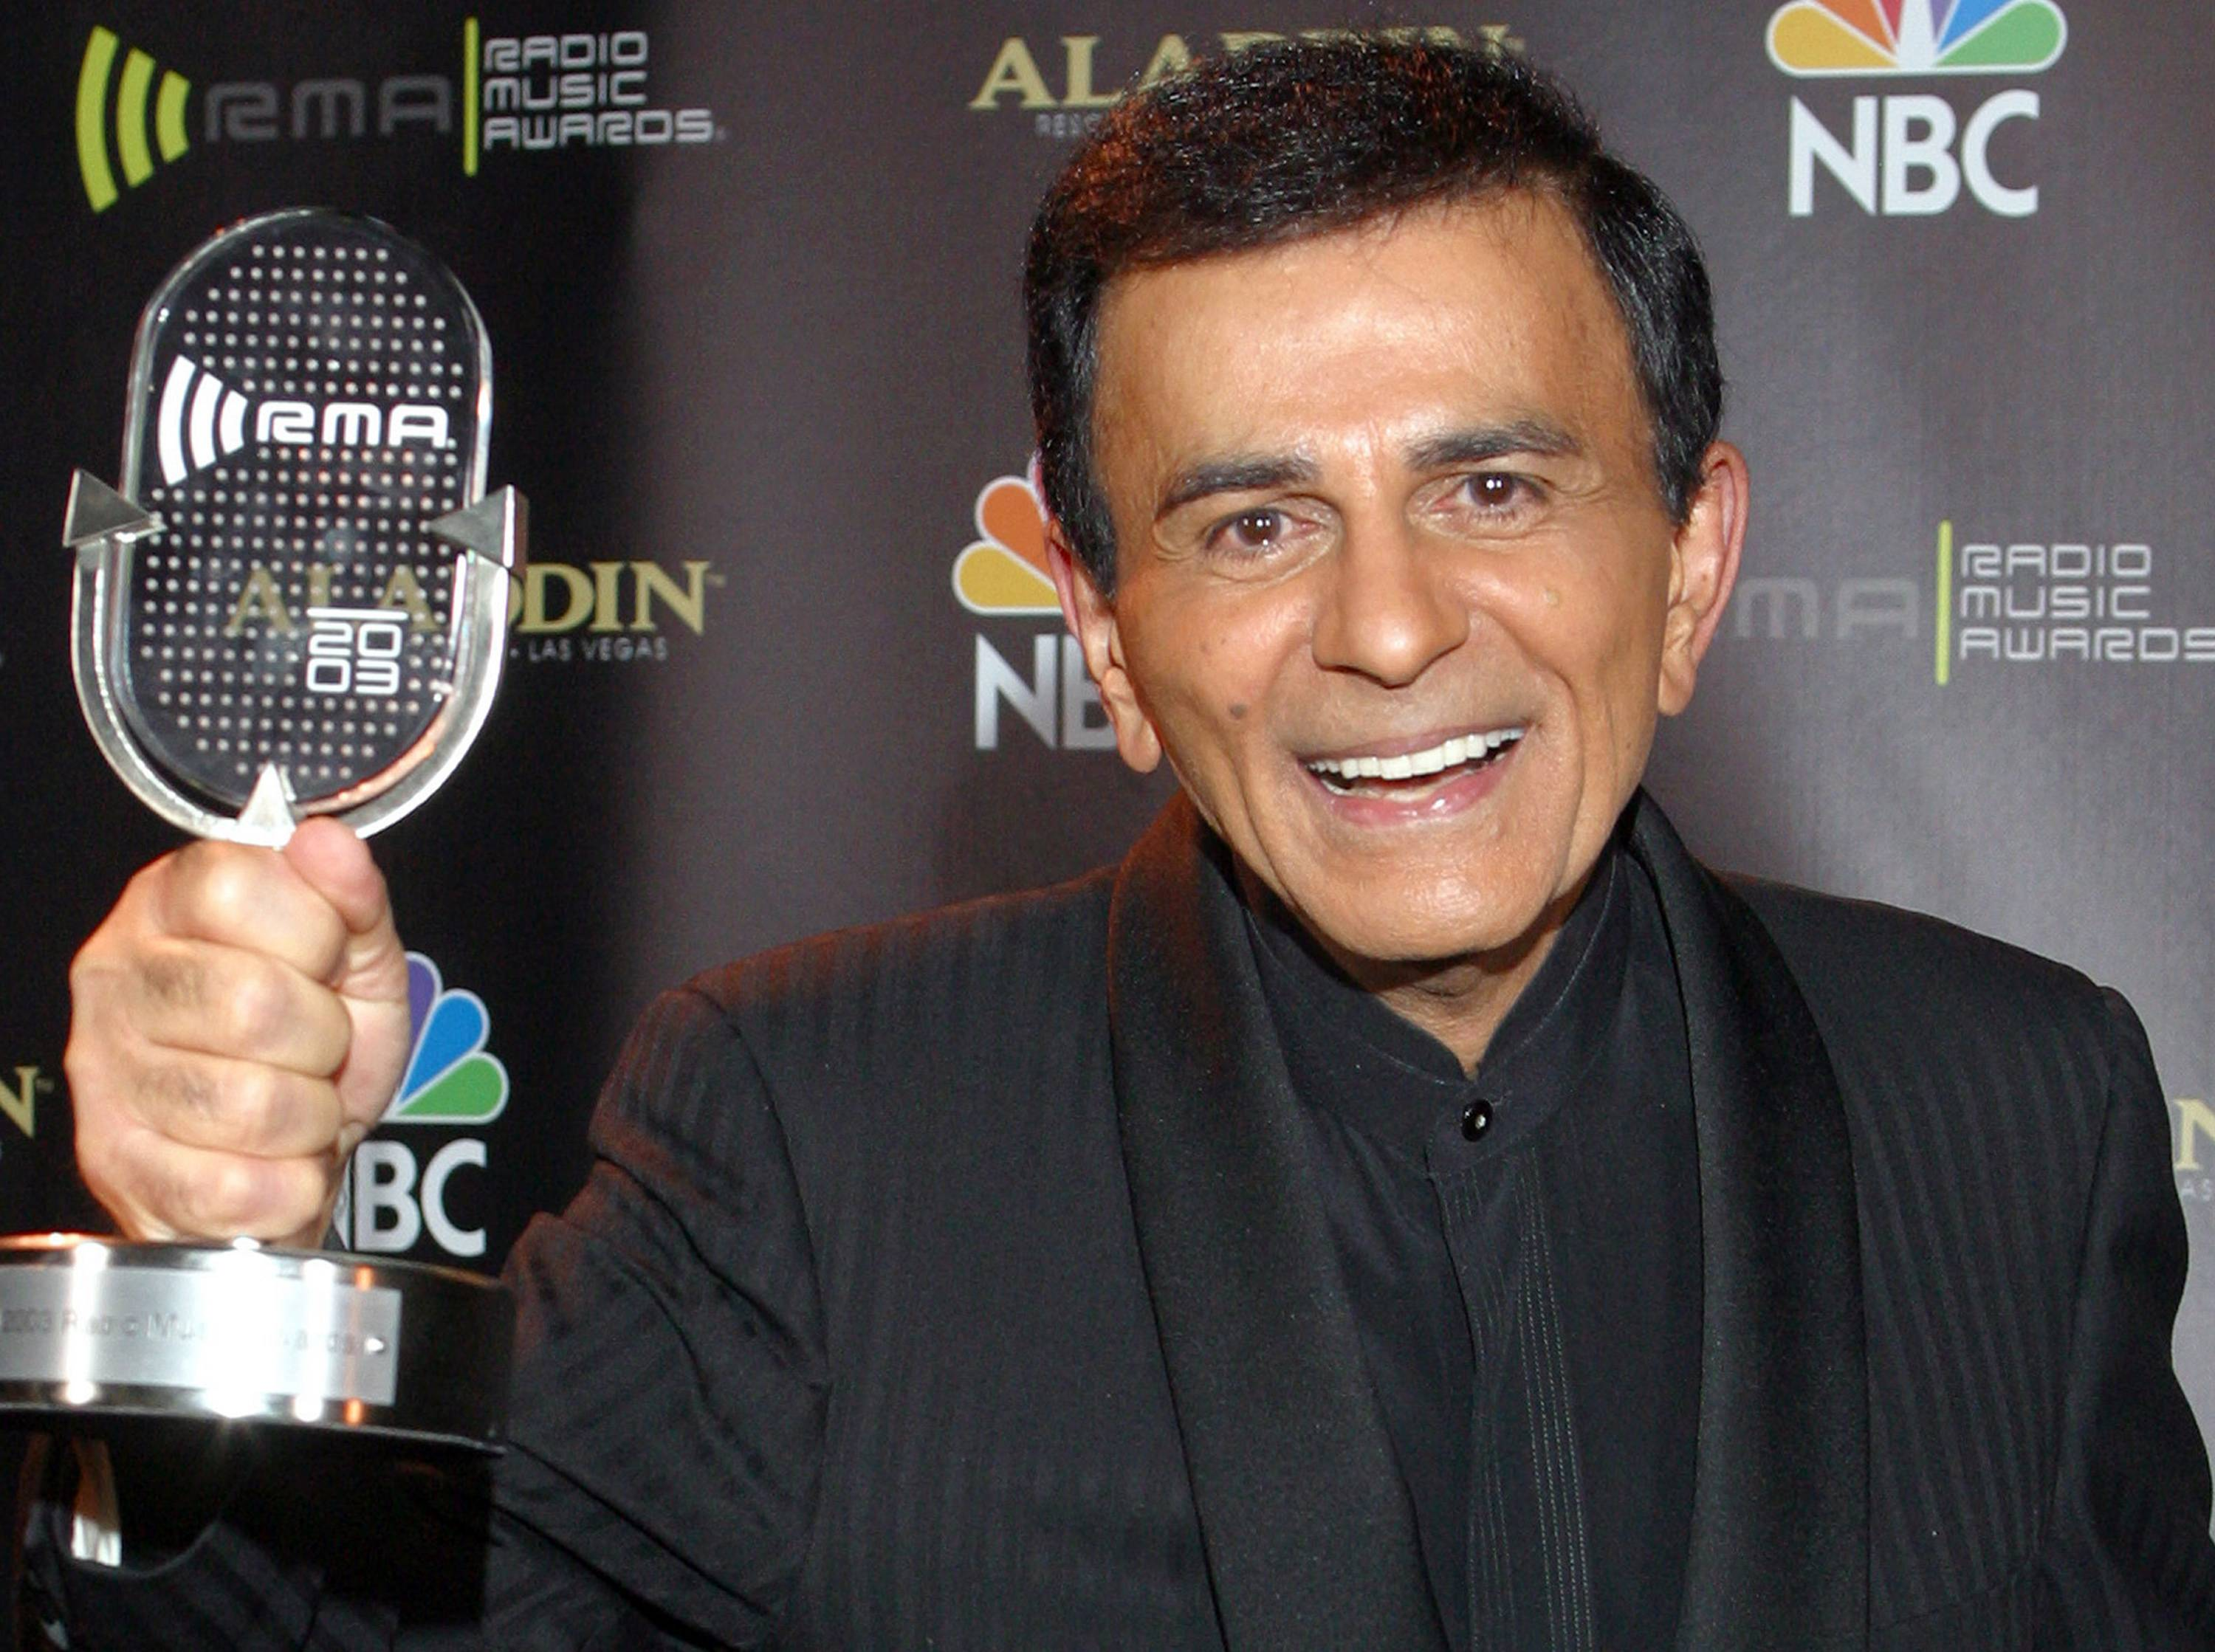 Casey Kasem poses for photographers after receiving the Radio Icon award during The 2003 Radio Music Awards in Las Vegas. A Los Angeles judge on Monday ruled that Kasem should receive food, hydration and medication while a court-appointed attorney travels to Washington state to evaluate the ailing radio personality and make a recommendation about his ongoing care.